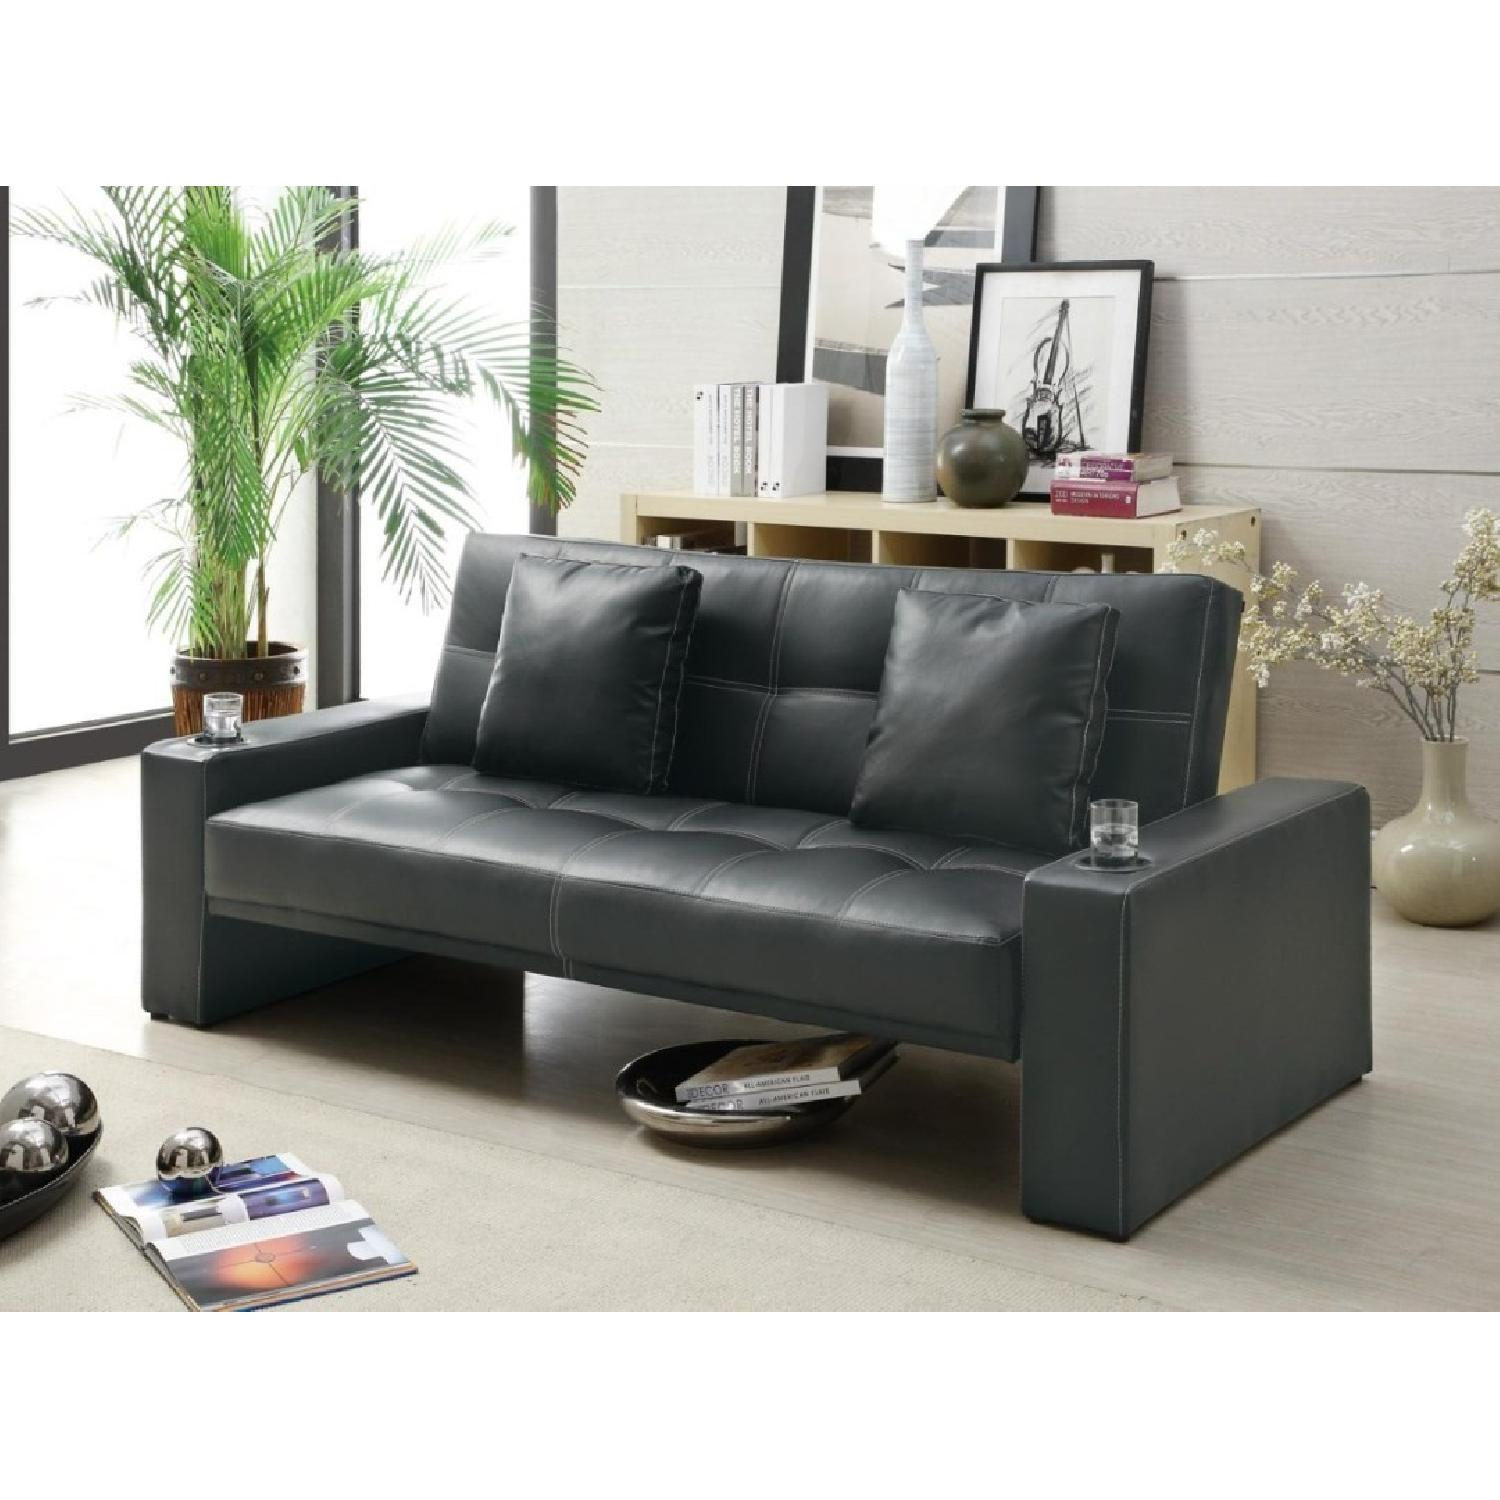 Sofabed in Black w/ Armrest Cupholders & 2 Accent Pillows - image-1